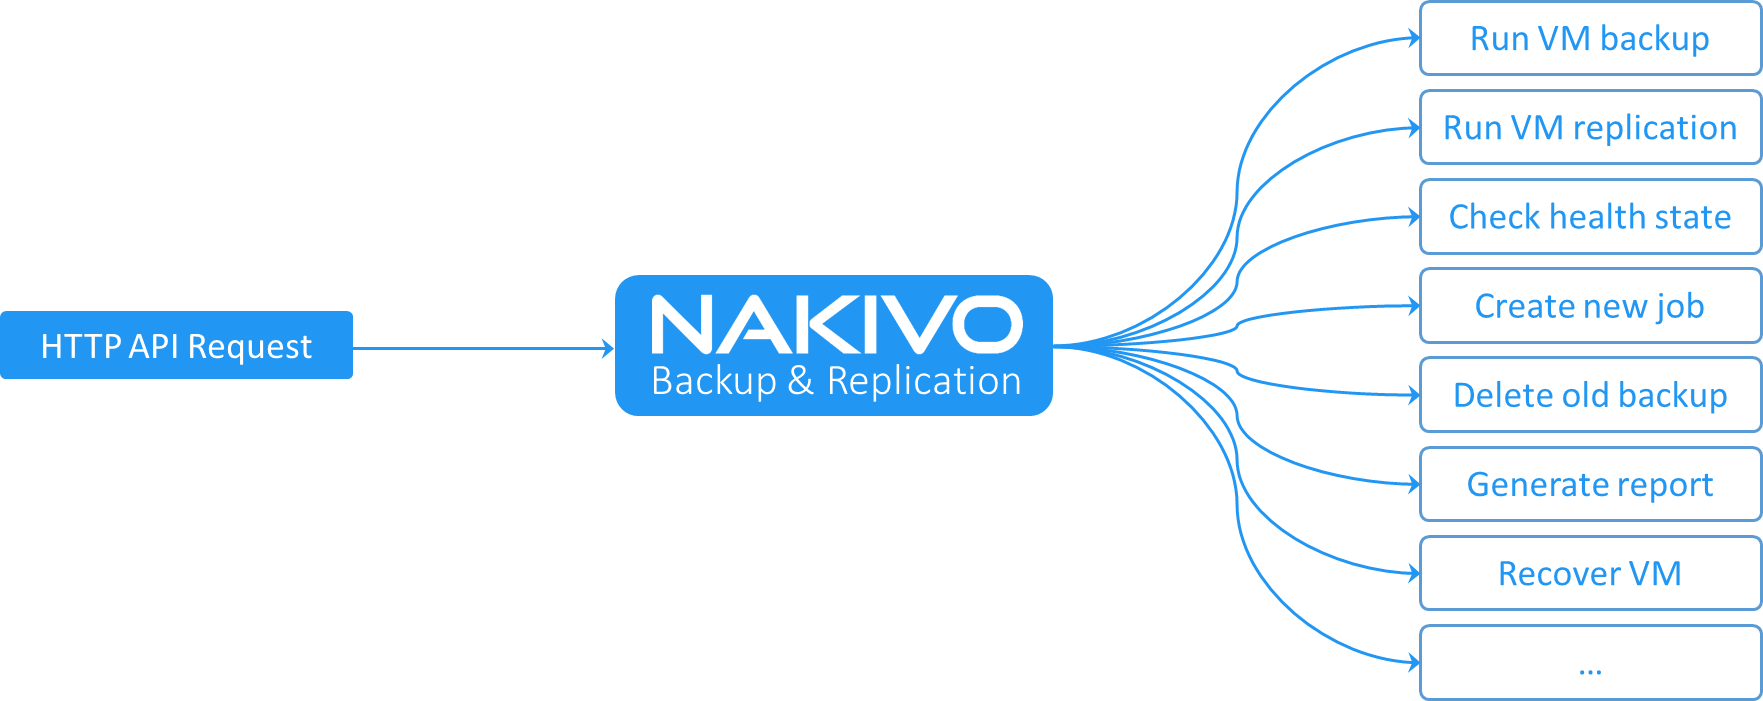 http api Nakivo Backup & Replication